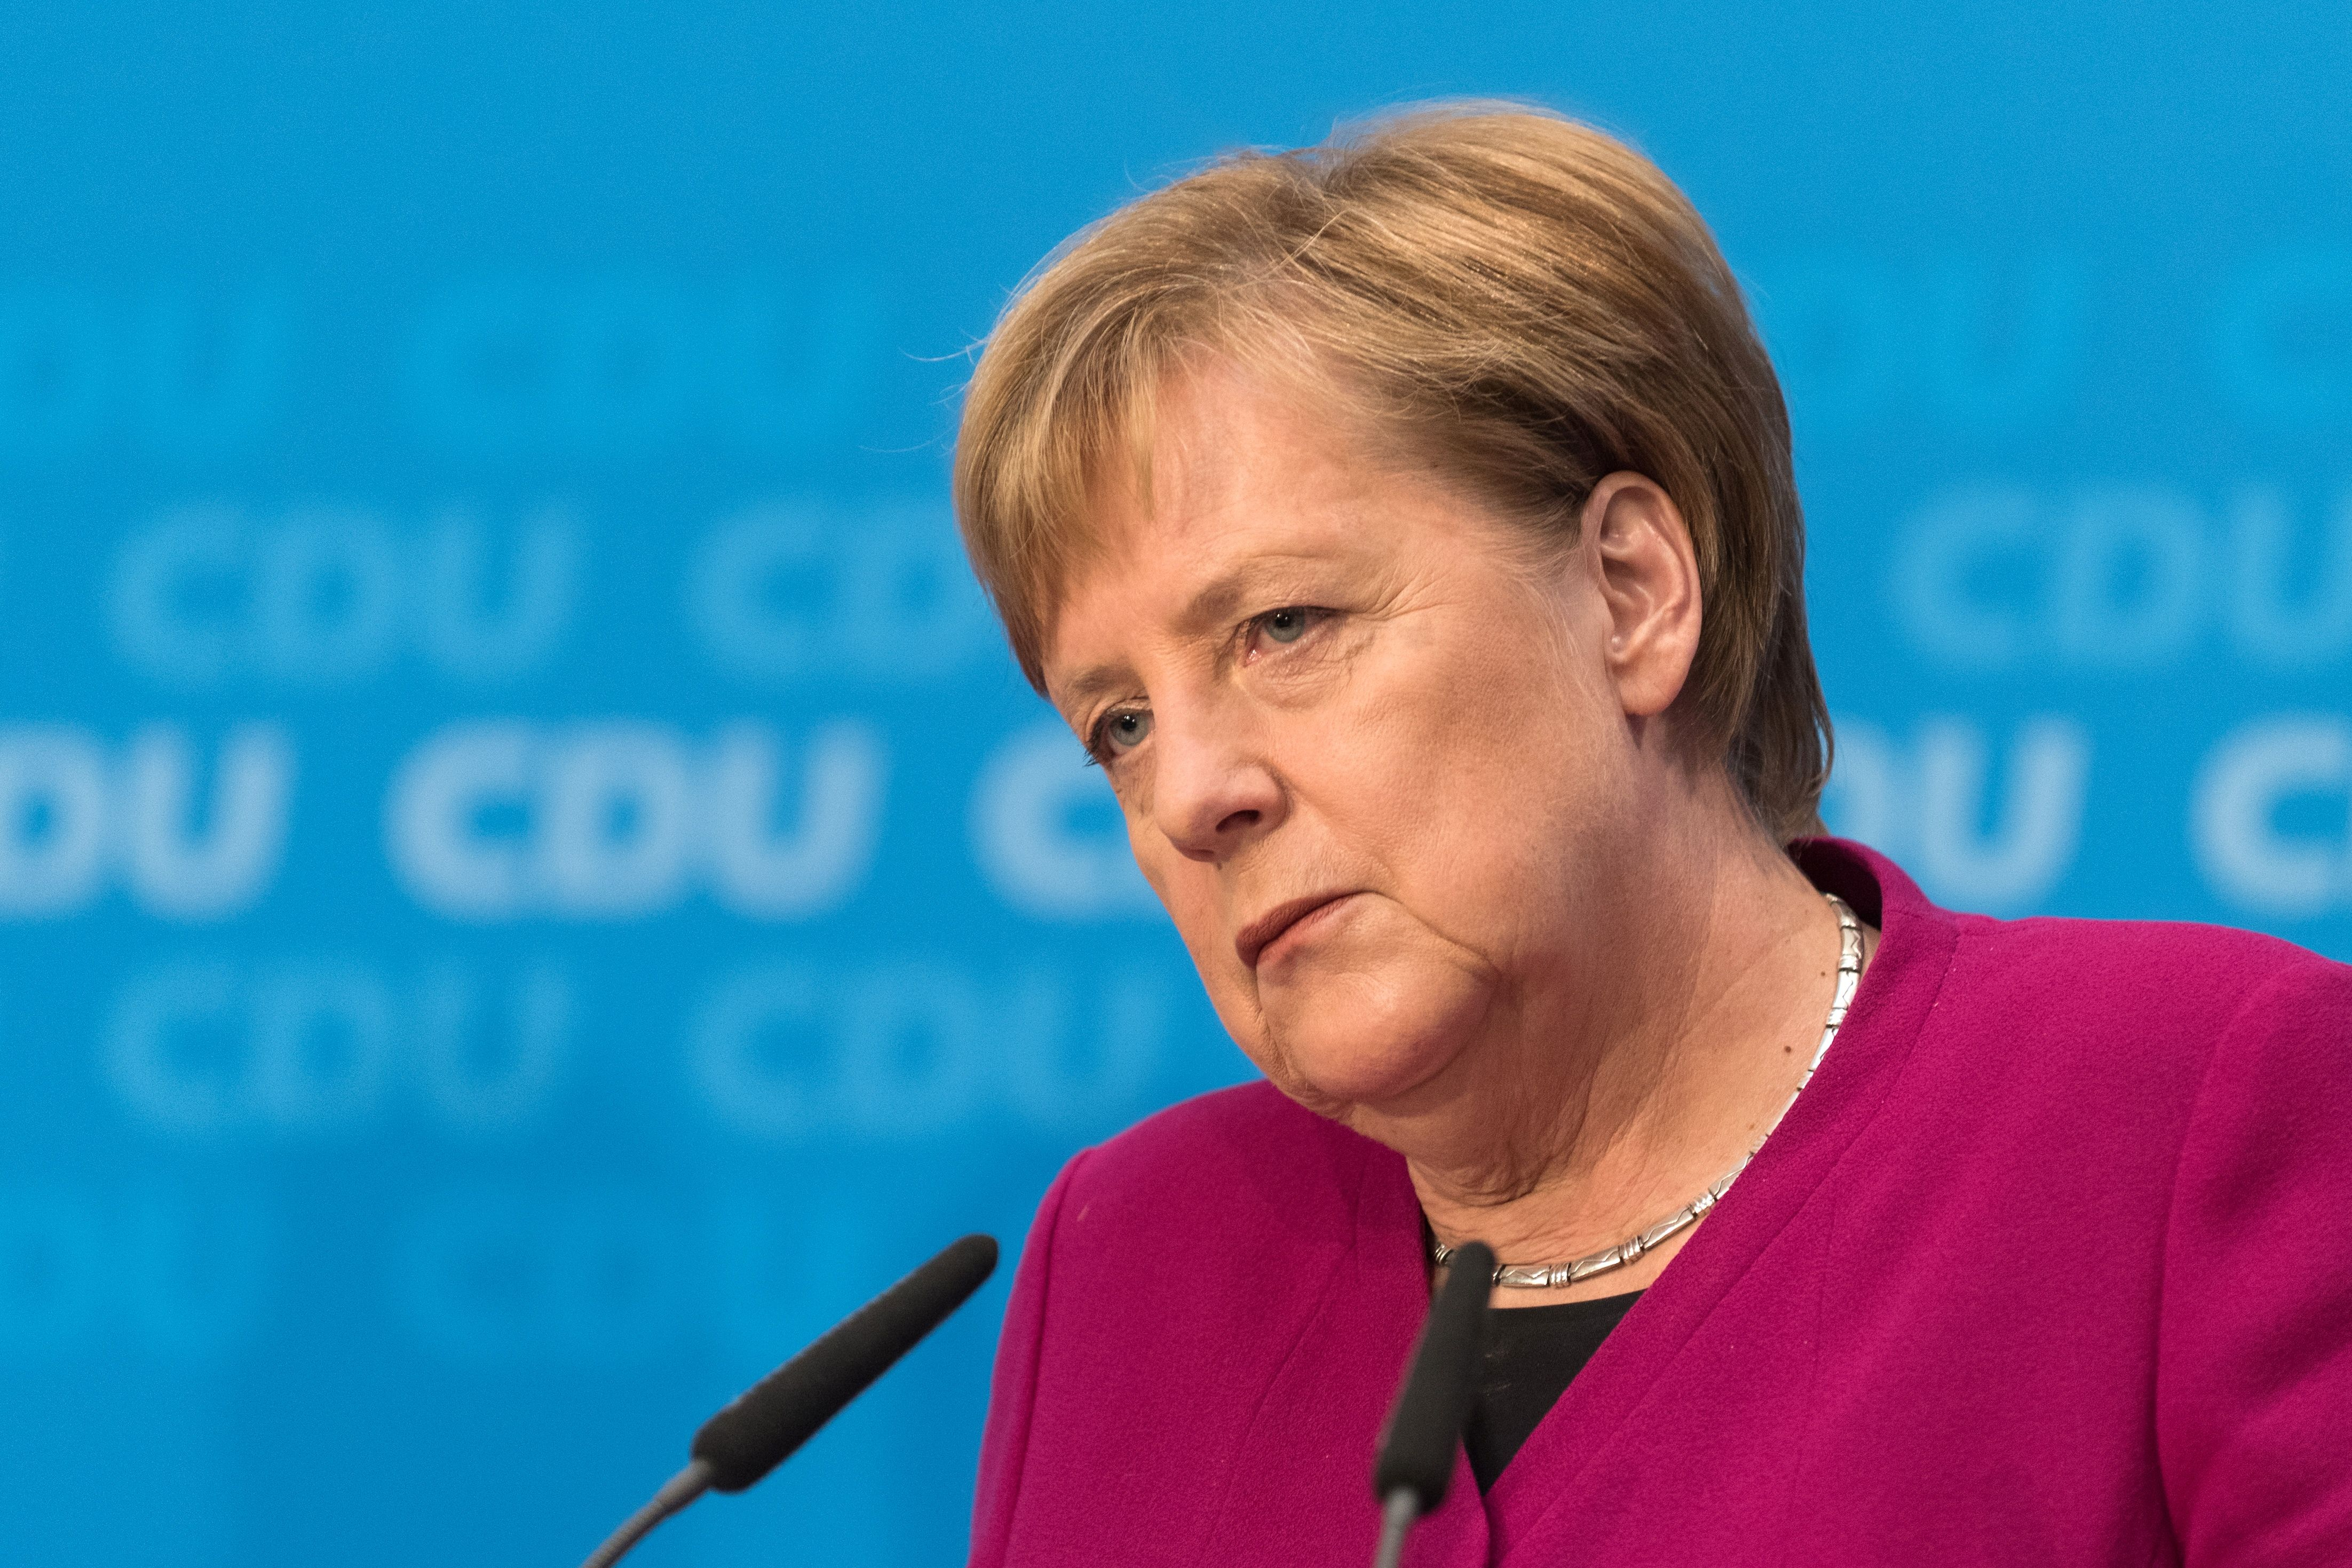 German Chancellor  Angela Merkel looks on during a press conference at the CDU headquarters on Oct. 29, 2018 one day after the regional state elections in Hesse